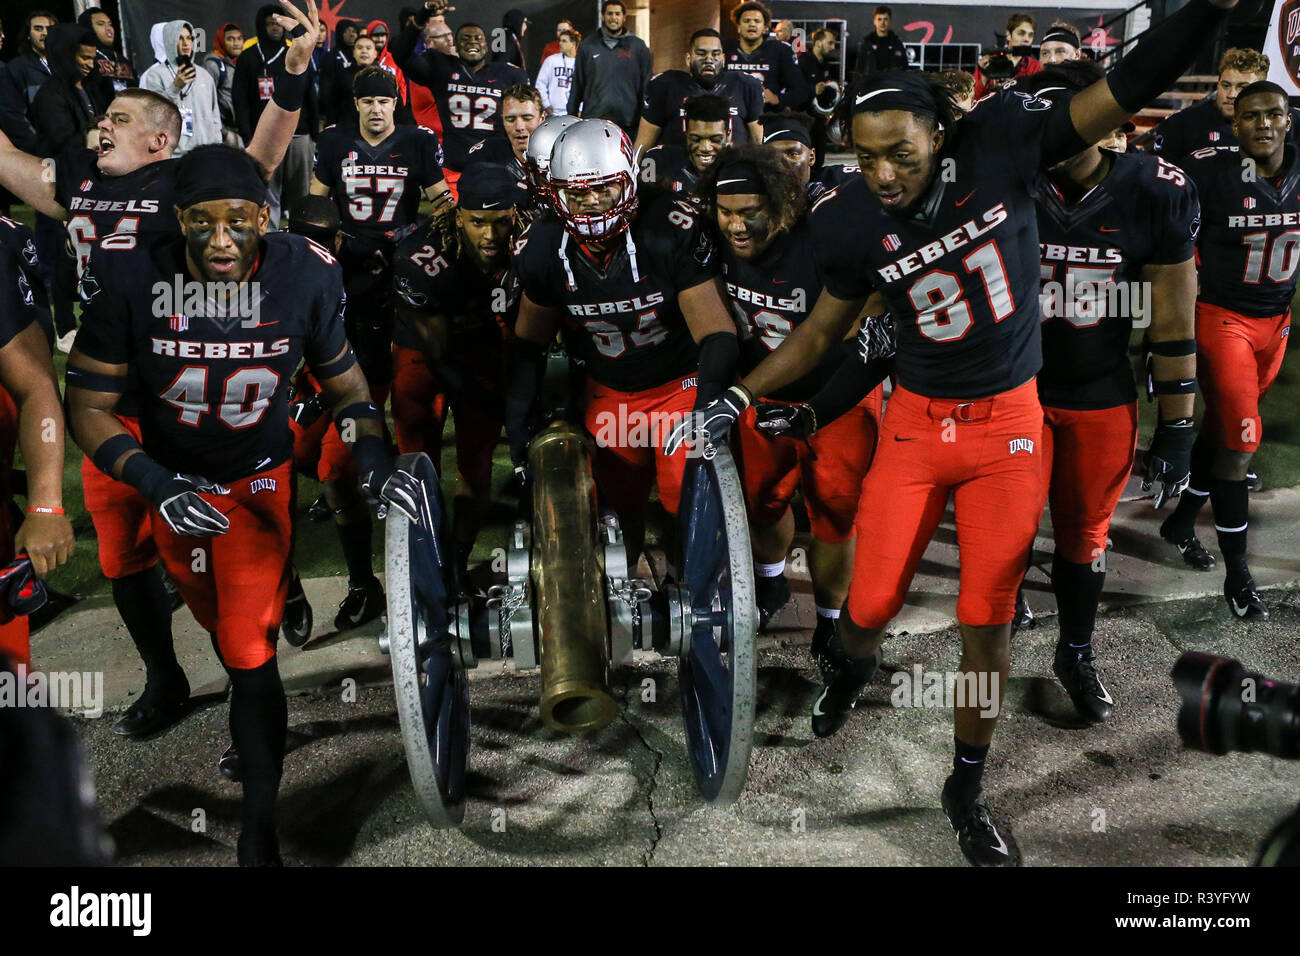 detailing 58a78 ff8ff Las Vegas, Nevada, USA. 24th Nov, 2018. UNLV Rebels players ...